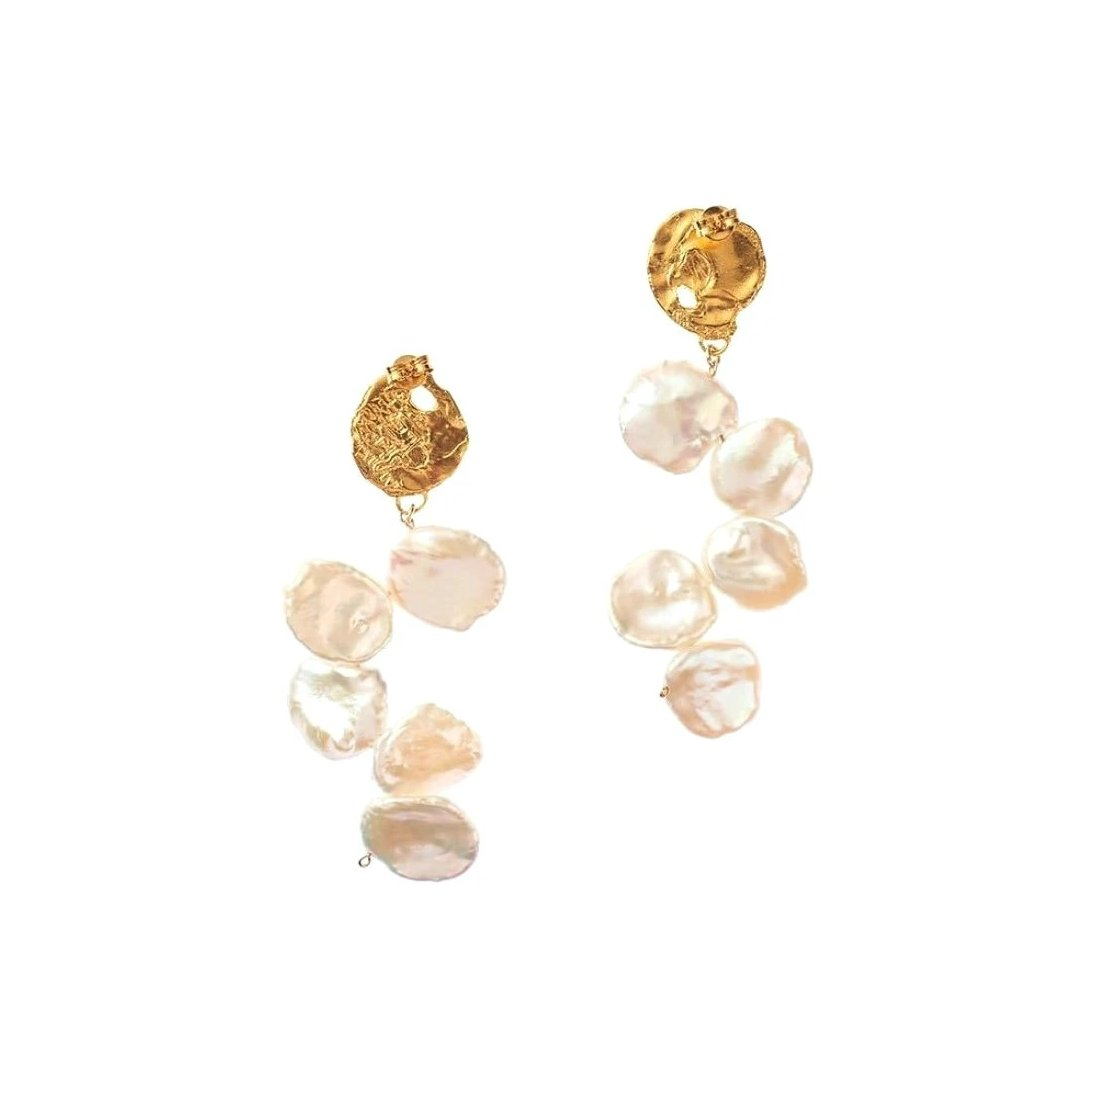 baroque pearl earrings dropped from golden seal motif displayed on white background